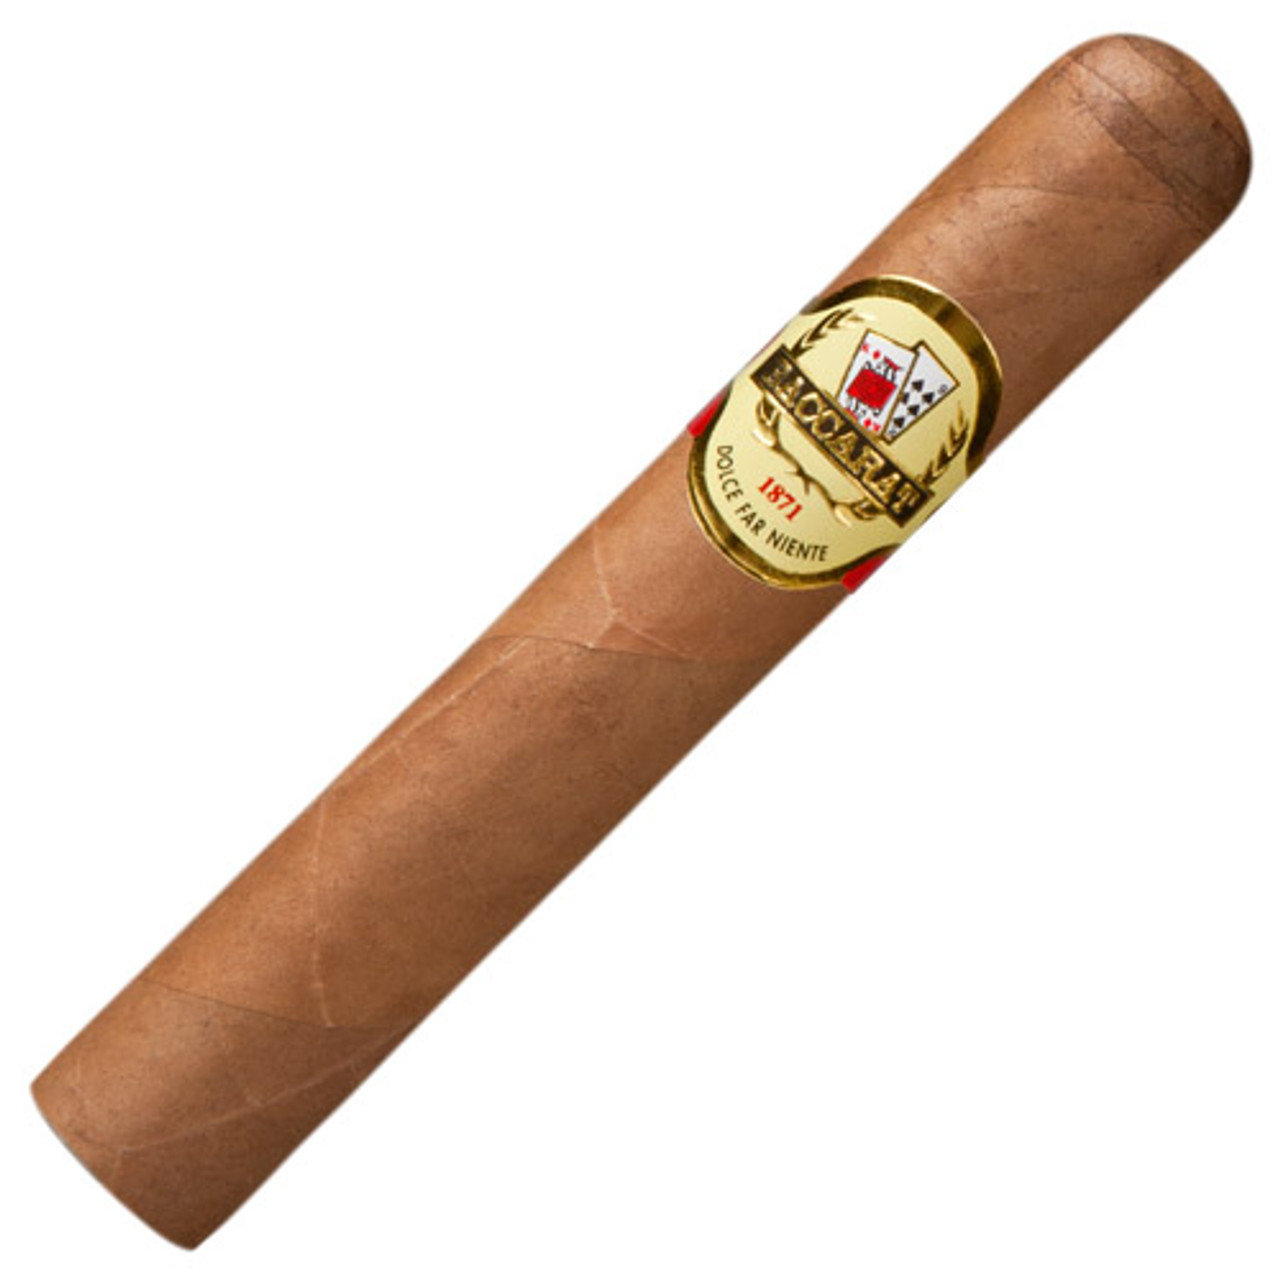 Baccarat Rothschild 5-Pack Cigars - 5 x 50 (Pack of 5)